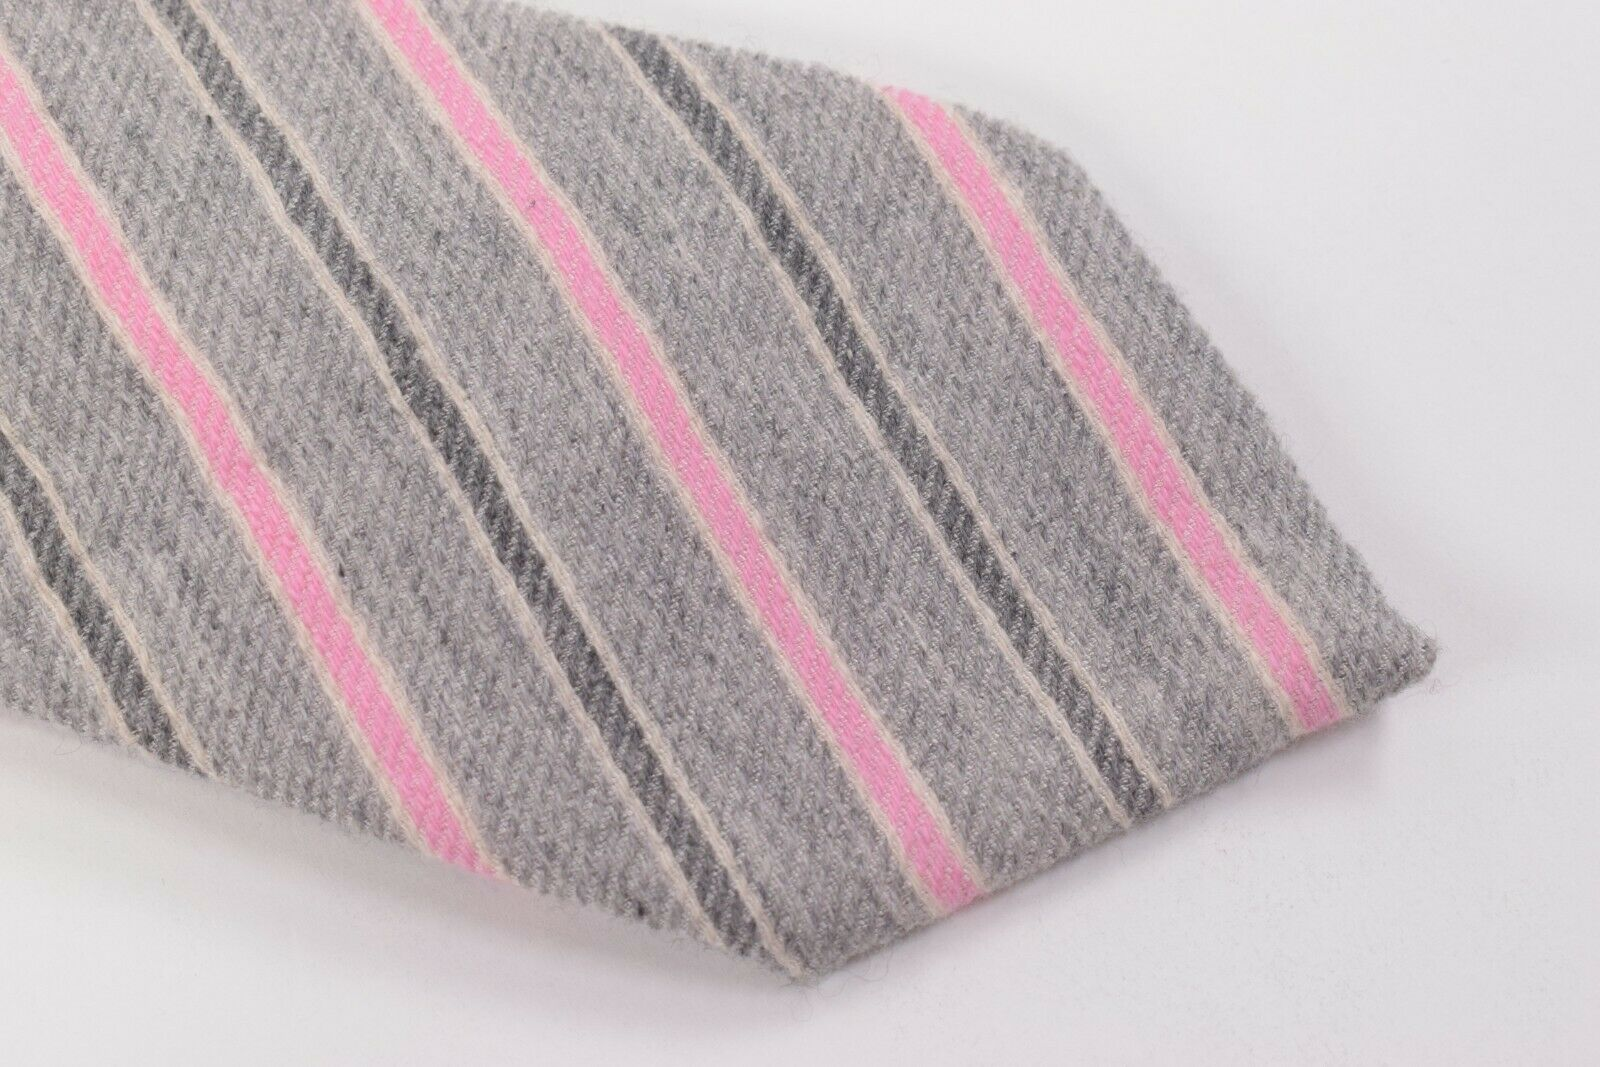 Belvest Neck Tie NWT Light Grey with Pink, Grey and White Stripes Cashmere Blend